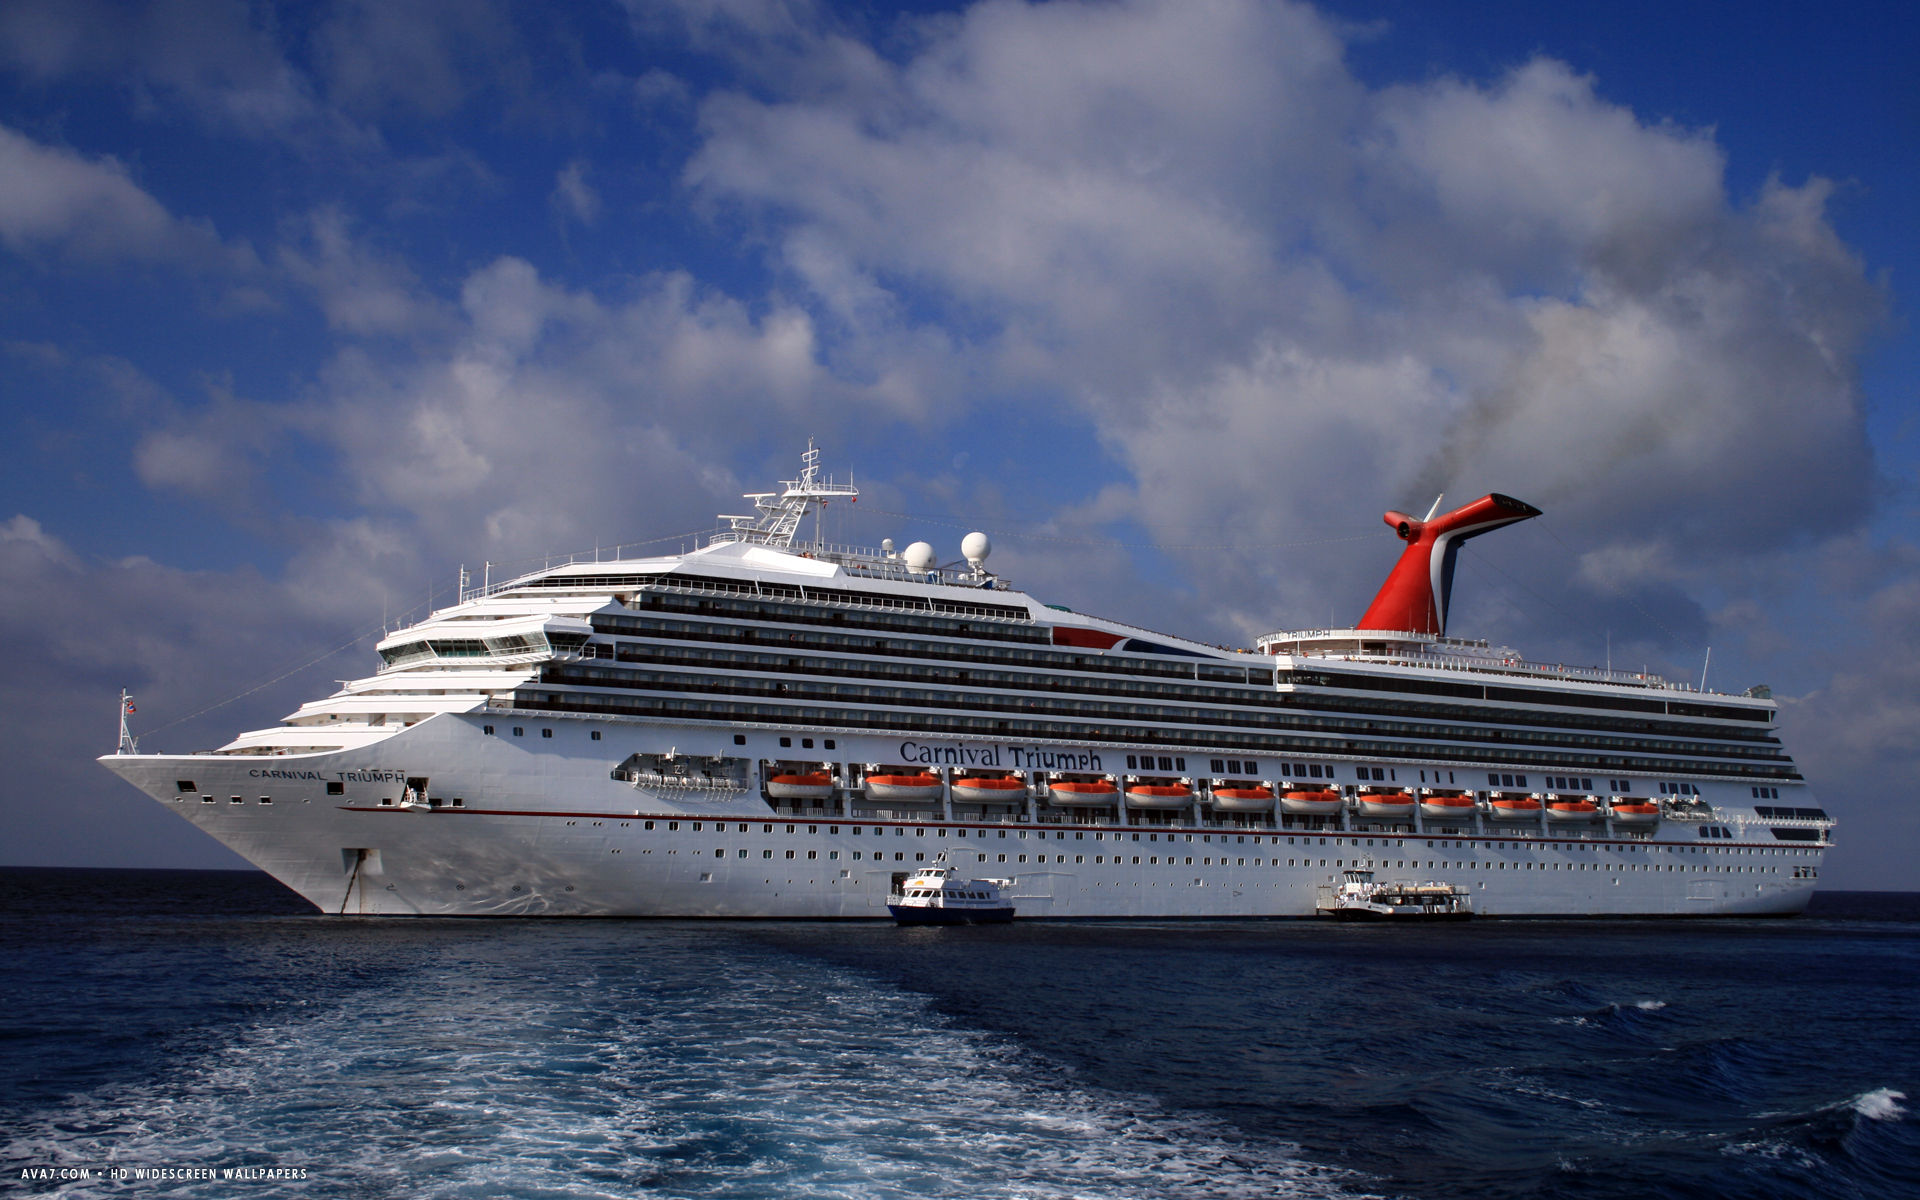 carnival triumph cruise ship hd widescreen wallpaper